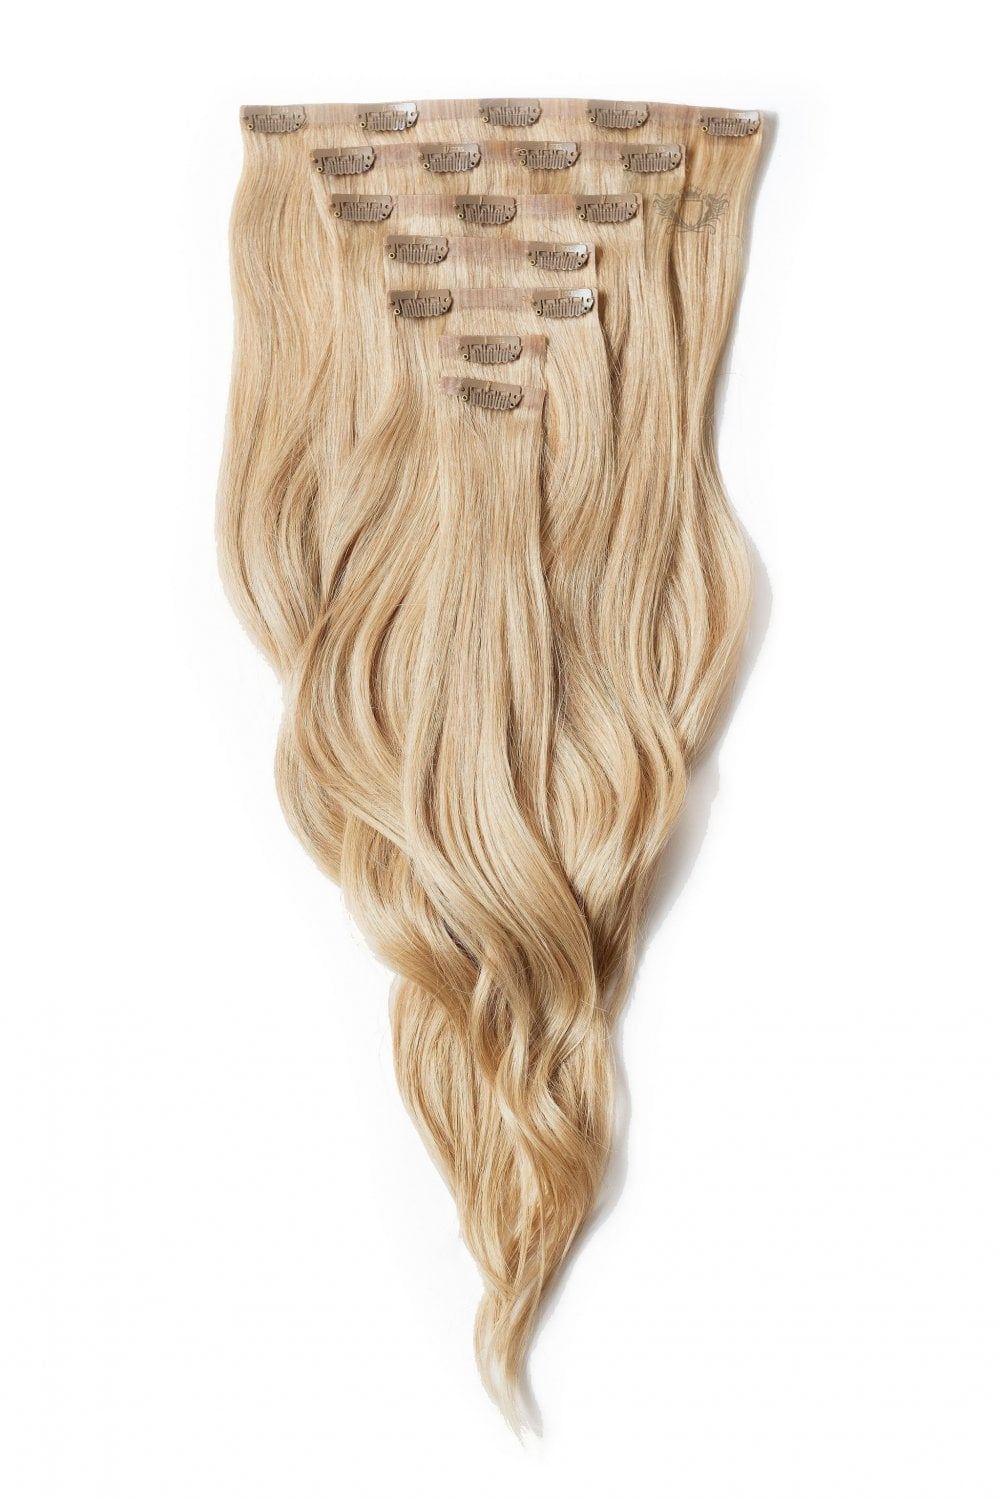 Caramel Seamless Deluxe 20 Clip In Human Hair Extensions 165g